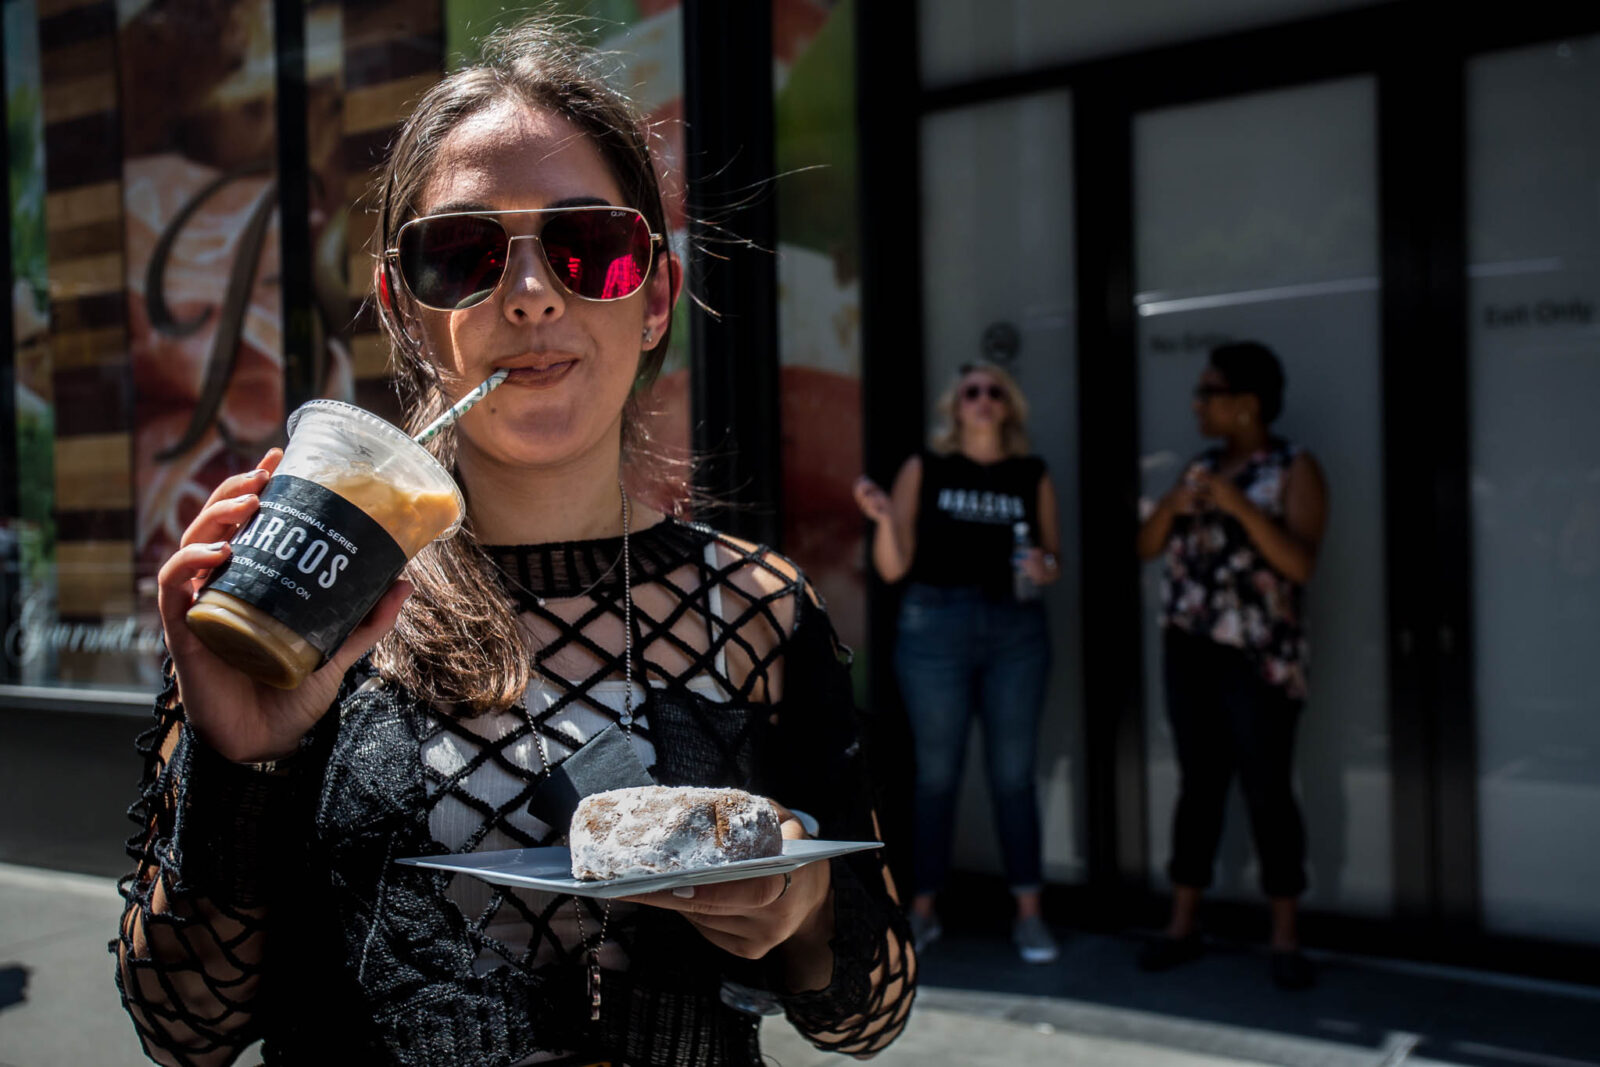 customer eating donuts at narcos food truck mobile tours